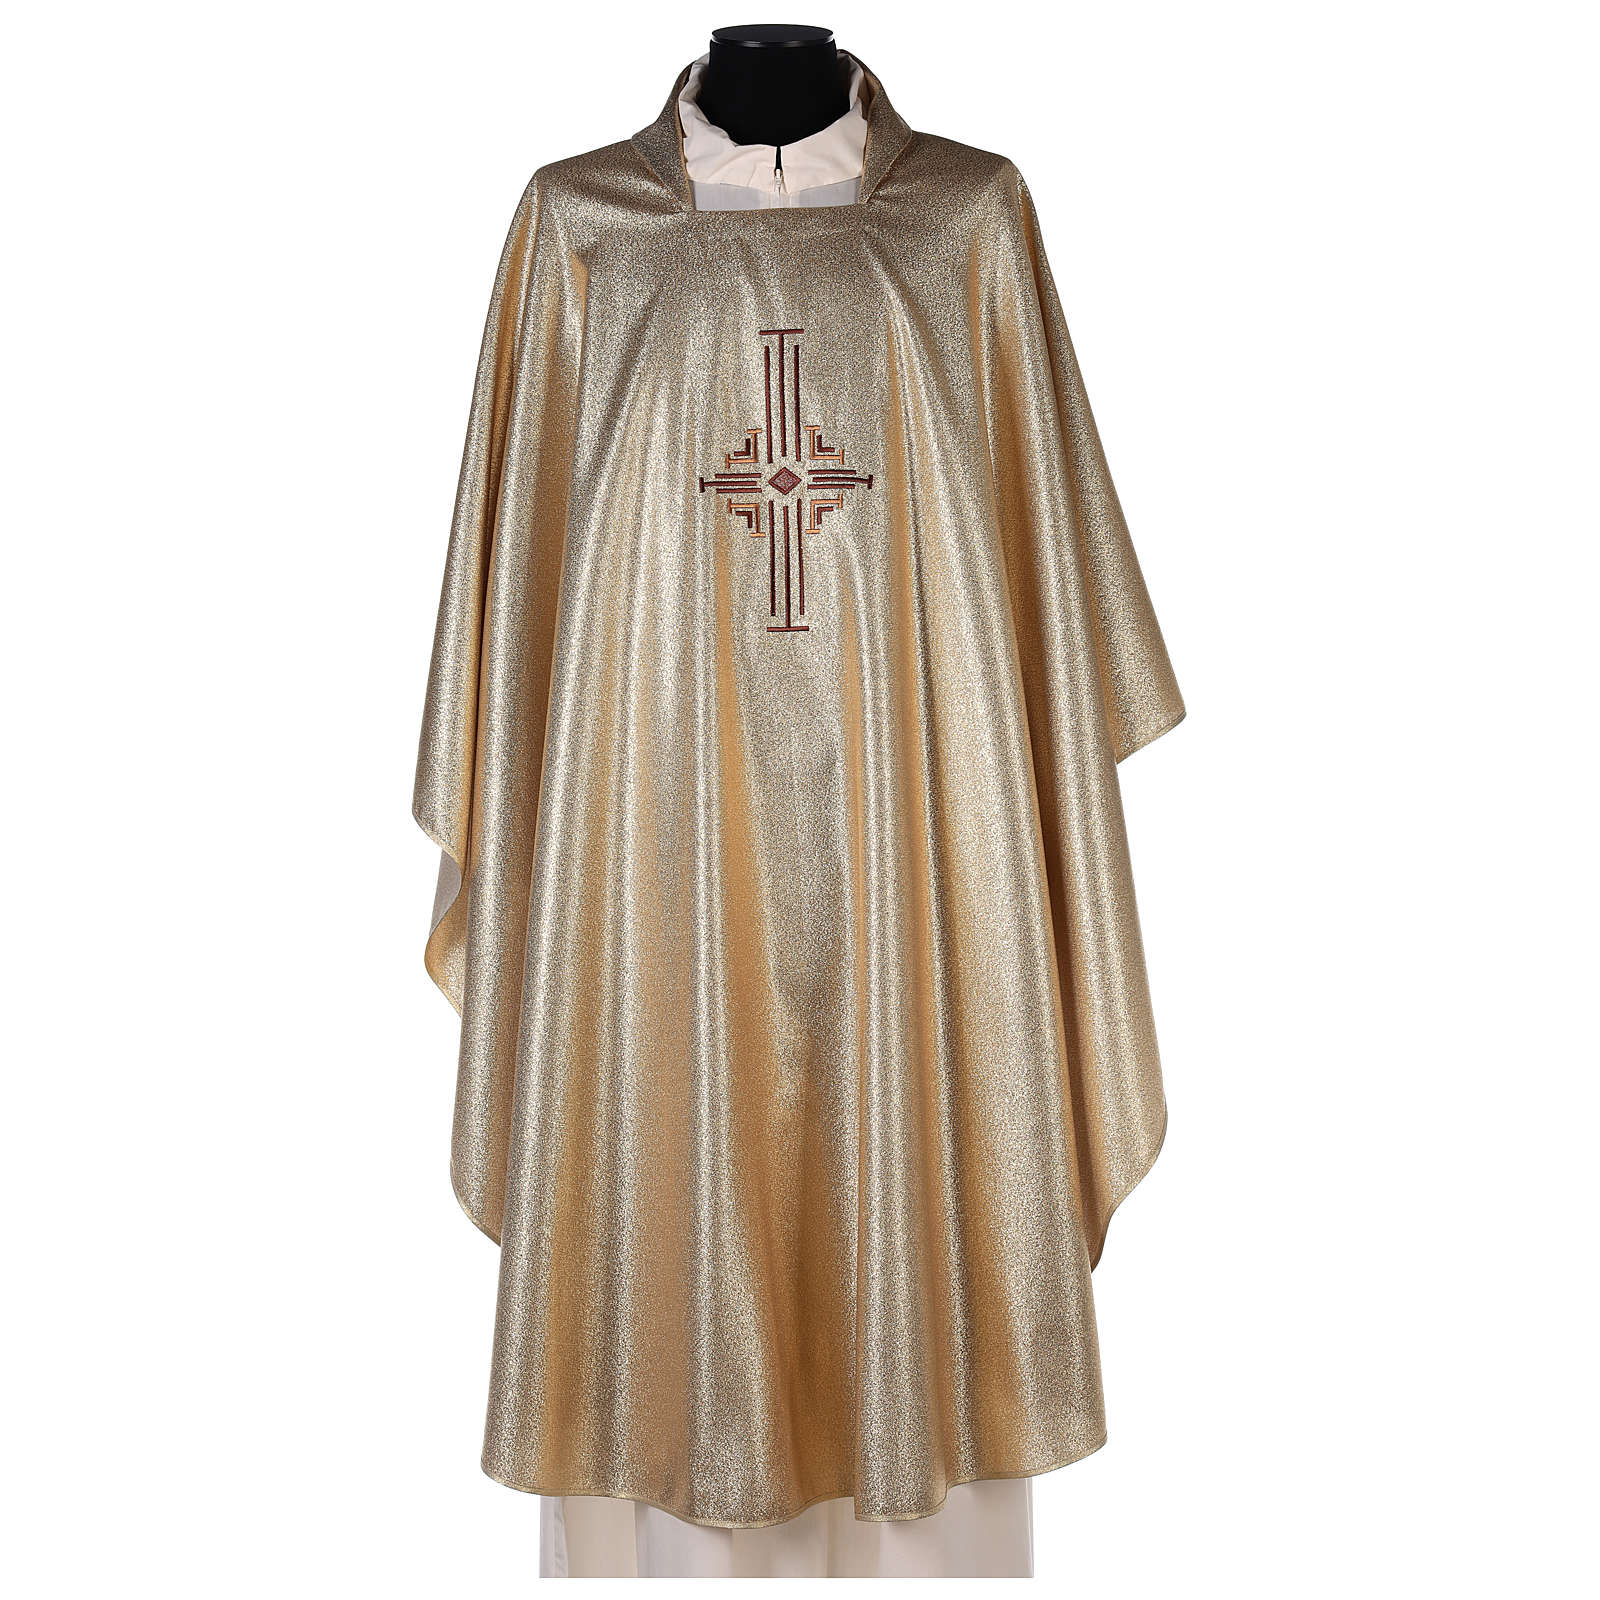 Chasuble in polyester with machine-embroidered cross on the front, gold 4